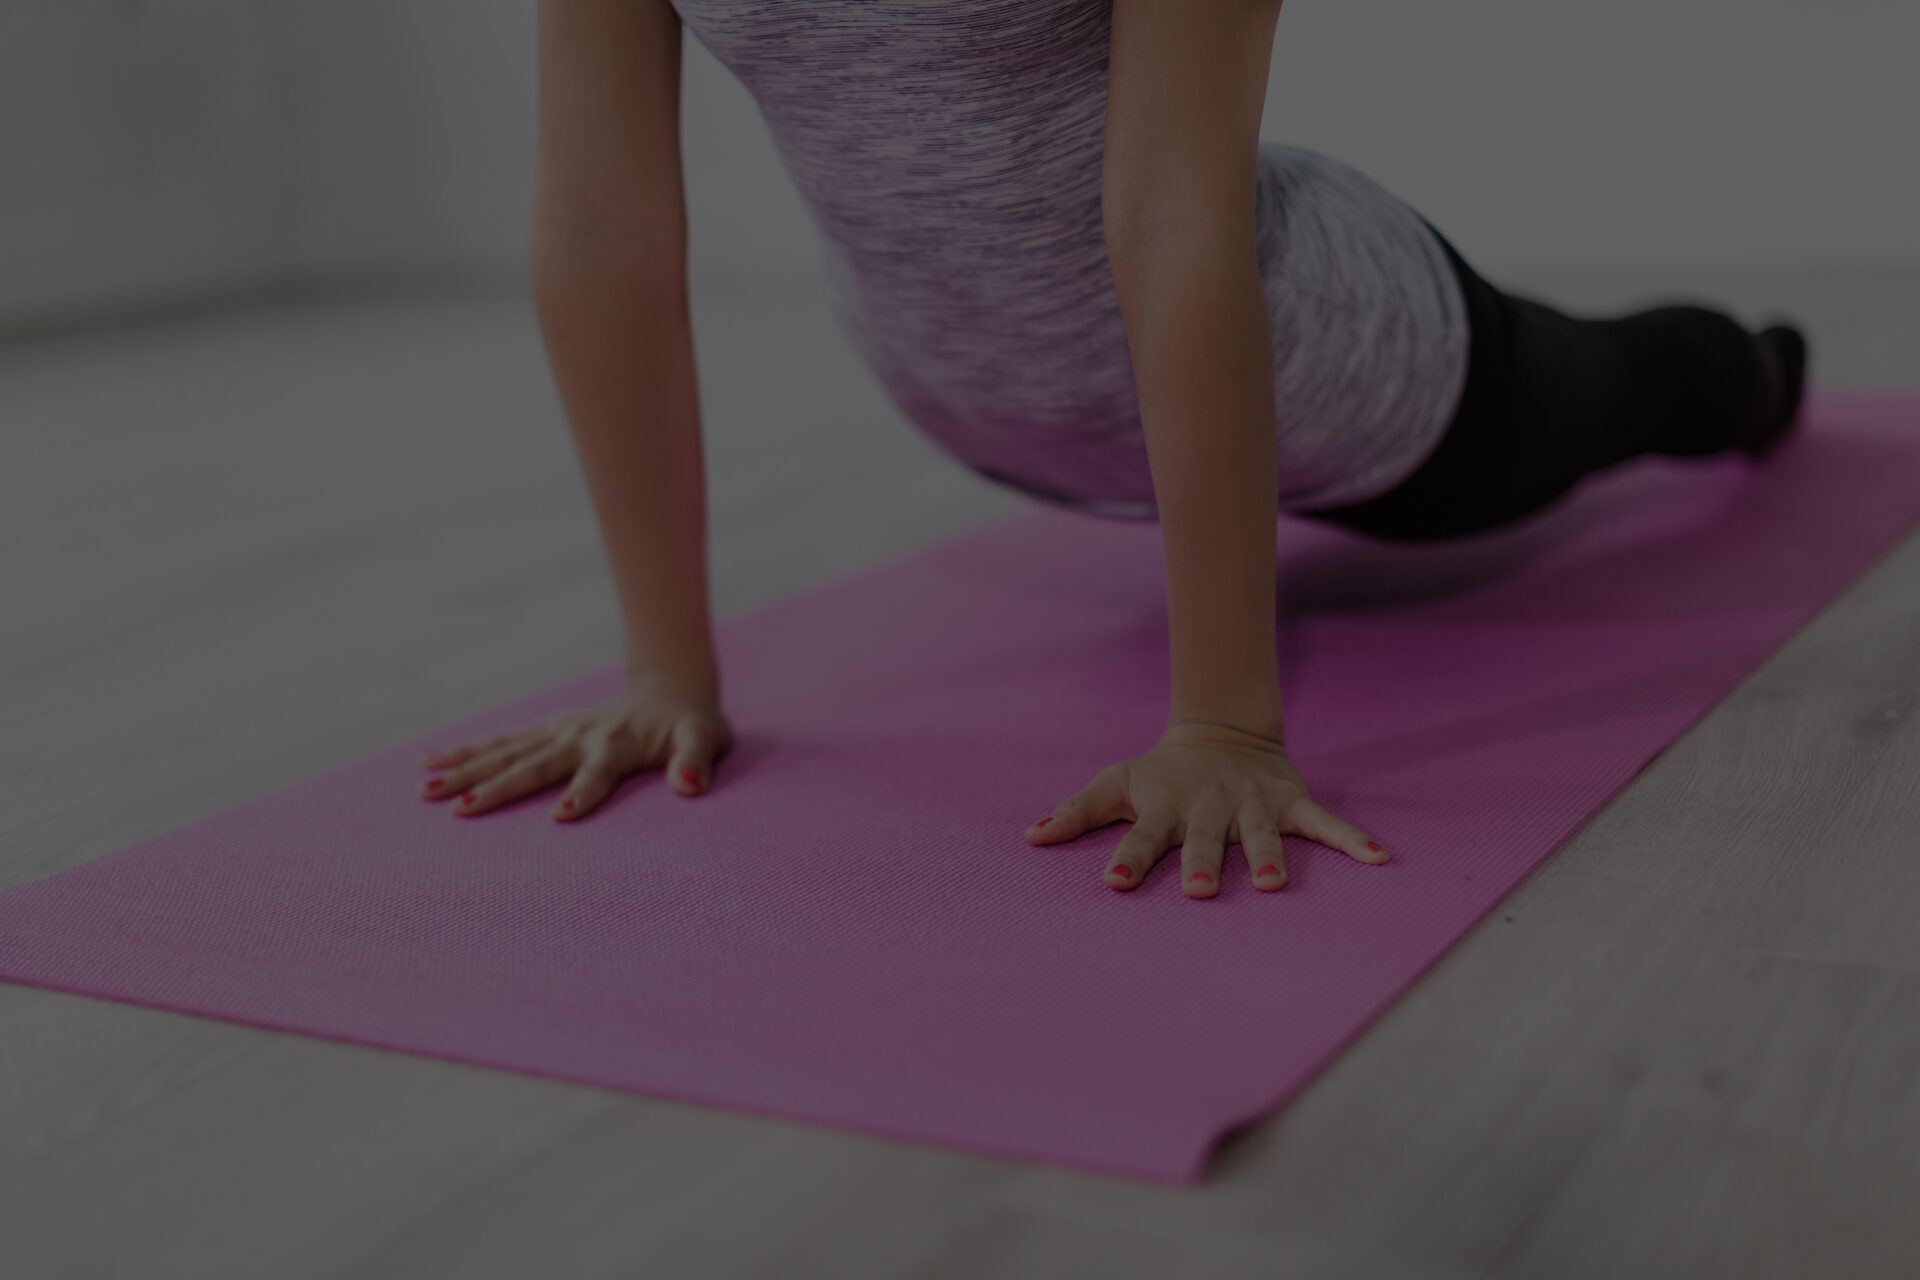 A girl stretching on a pink yoga mat.